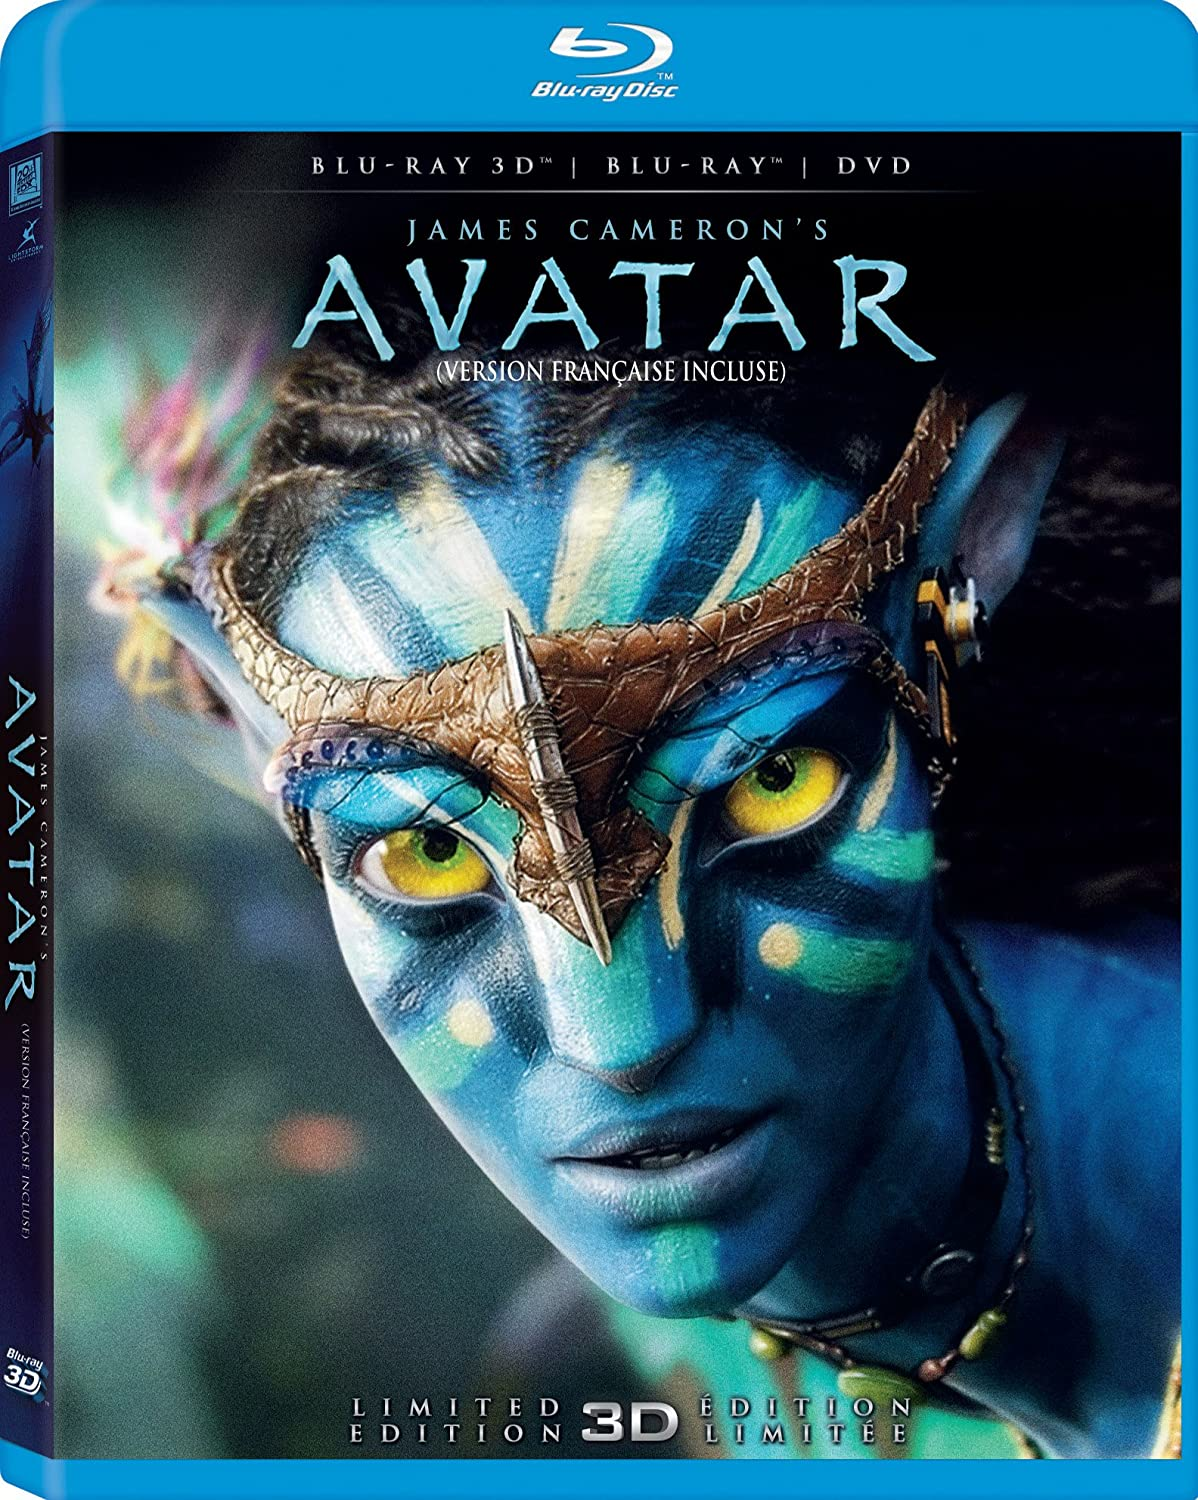 avatar limited d edition blu ray d blu ray dvd bilingual  avatar limited 3d edition blu ray 3d blu ray dvd bilingual ca sam worthington dvd